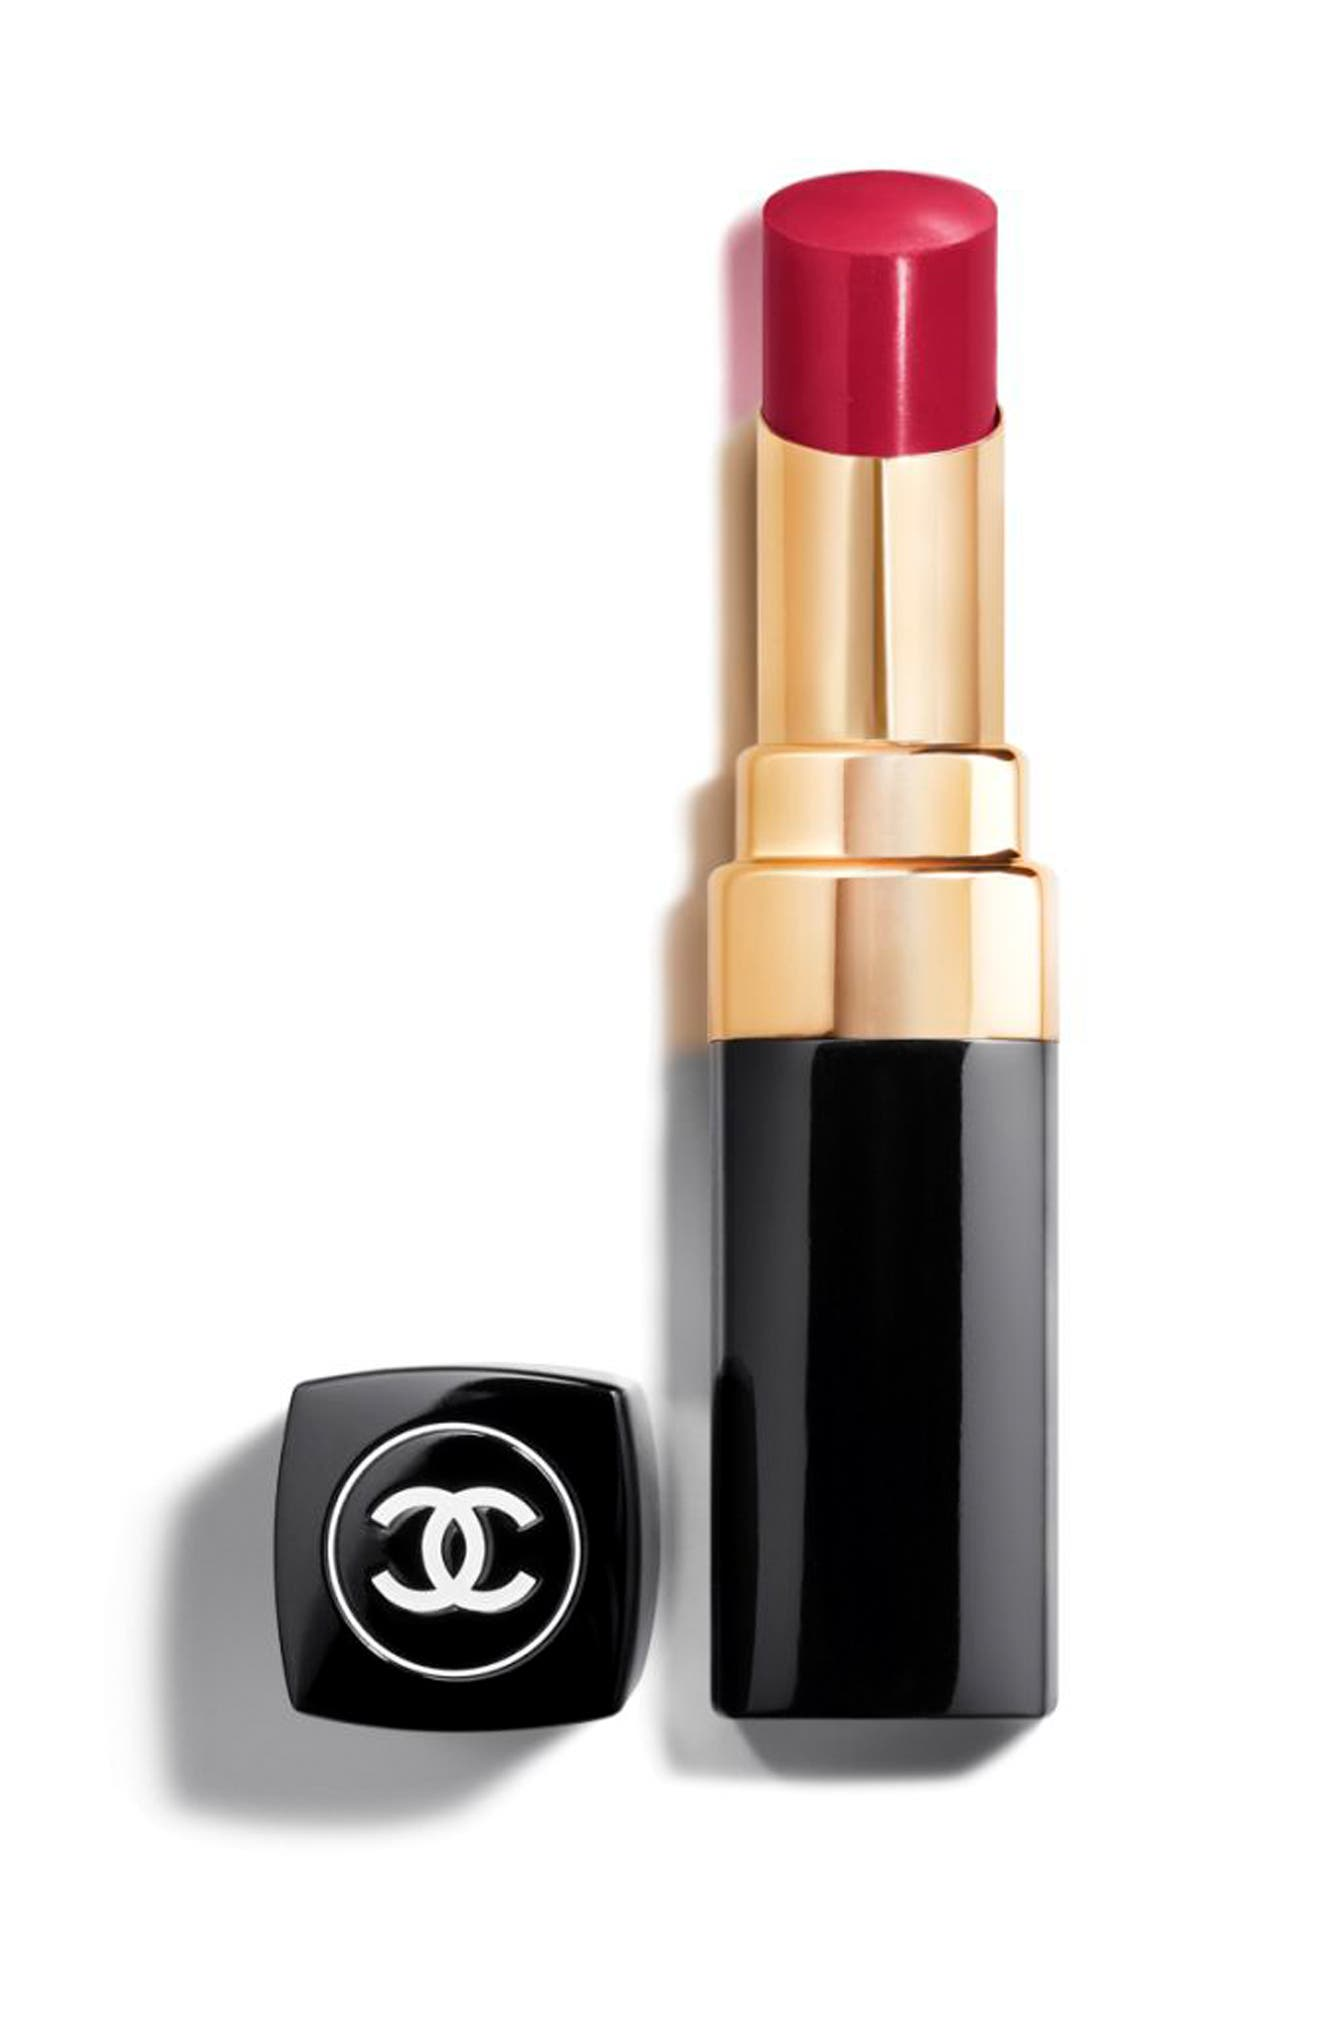 CHANEL,                             ROUGE COCO SHINE<br />Hydrating Sheer Lipshine,                             Main thumbnail 1, color,                             144 ROUGE IRRESISTIBLE